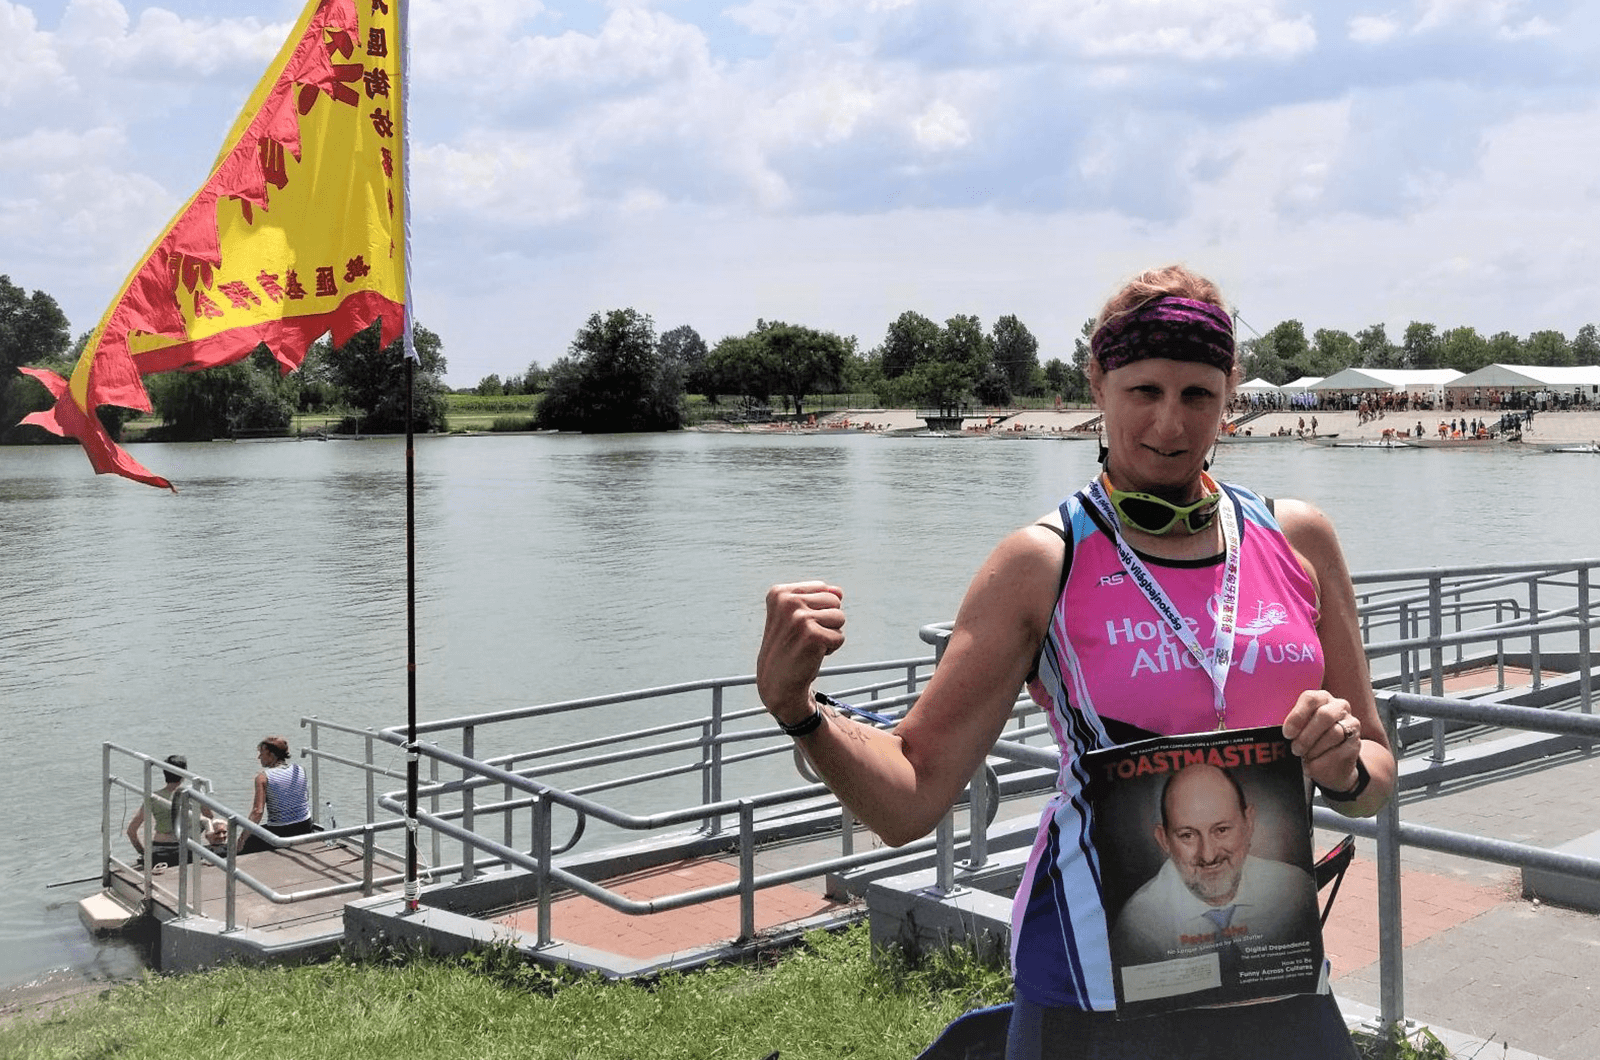 Kathy Myers of Philadelphia, Pennsylvania, competed in the International Dragon Boat Federation National Club Crew Championships in July 2018. She and her team earned the bronze medal in the short boat competition—a 500-meter race—in Szeged, Hungary!